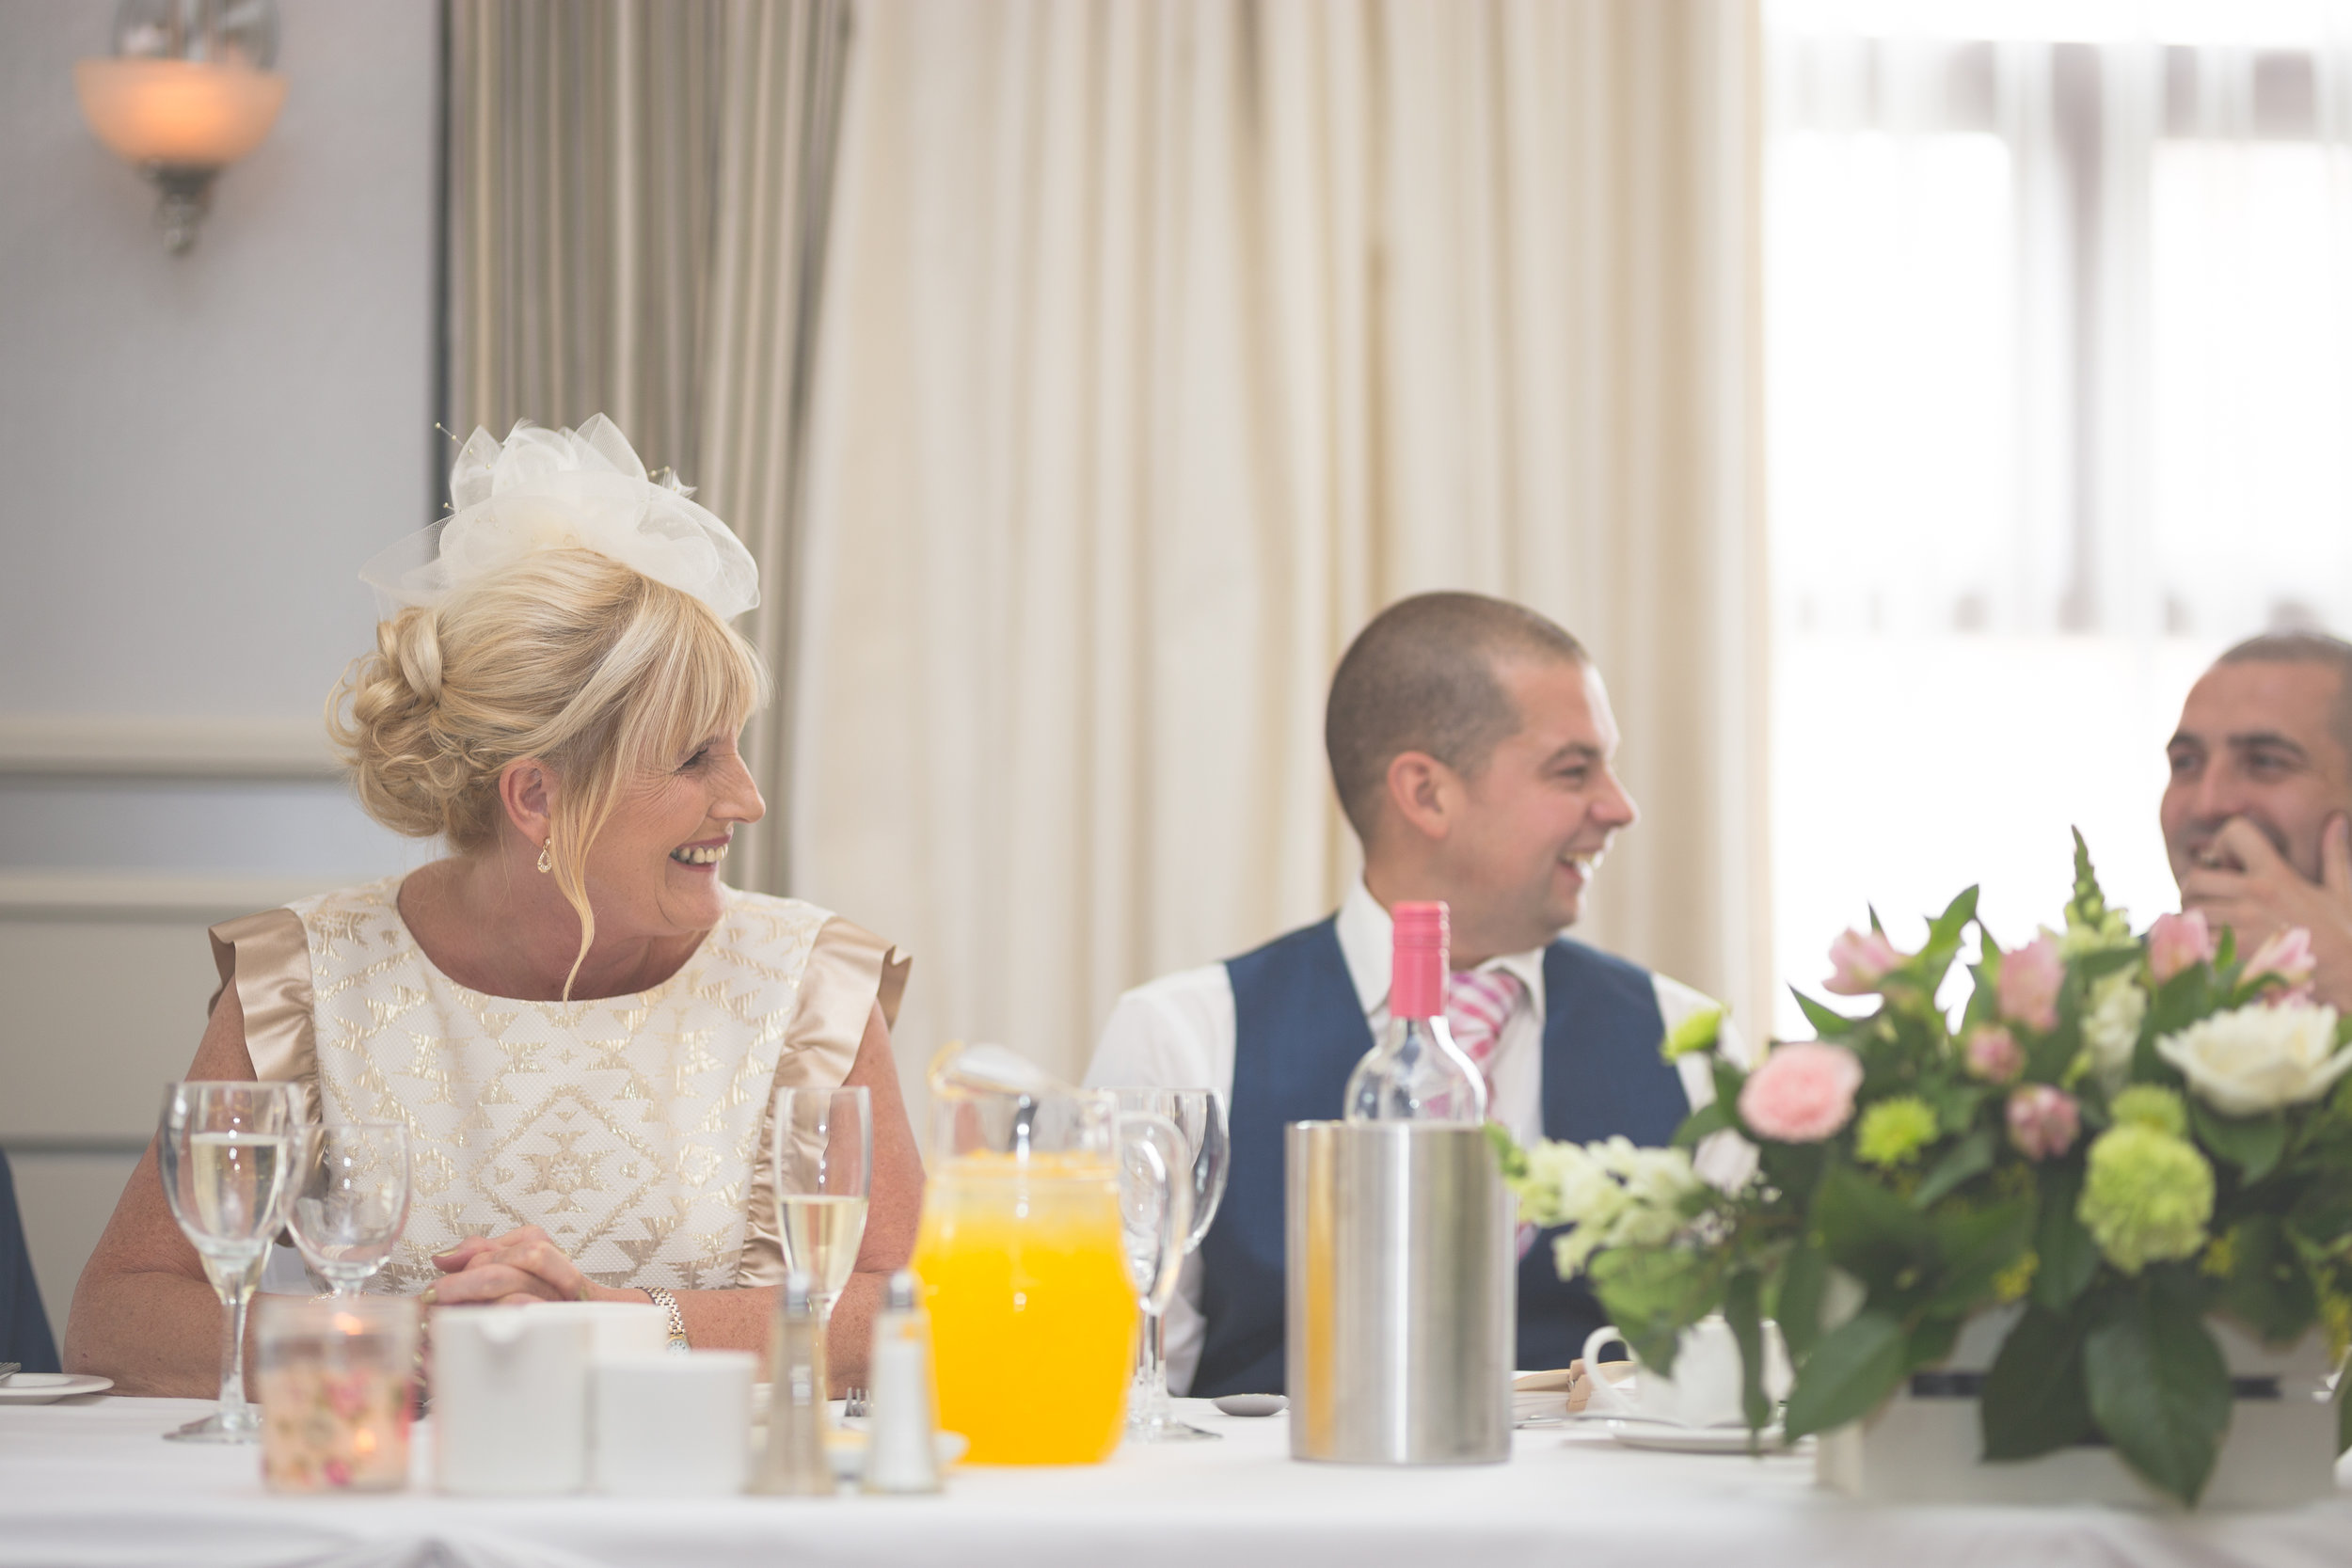 Antoinette & Stephen - Speeches | Brian McEwan Photography | Wedding Photographer Northern Ireland 32.jpg